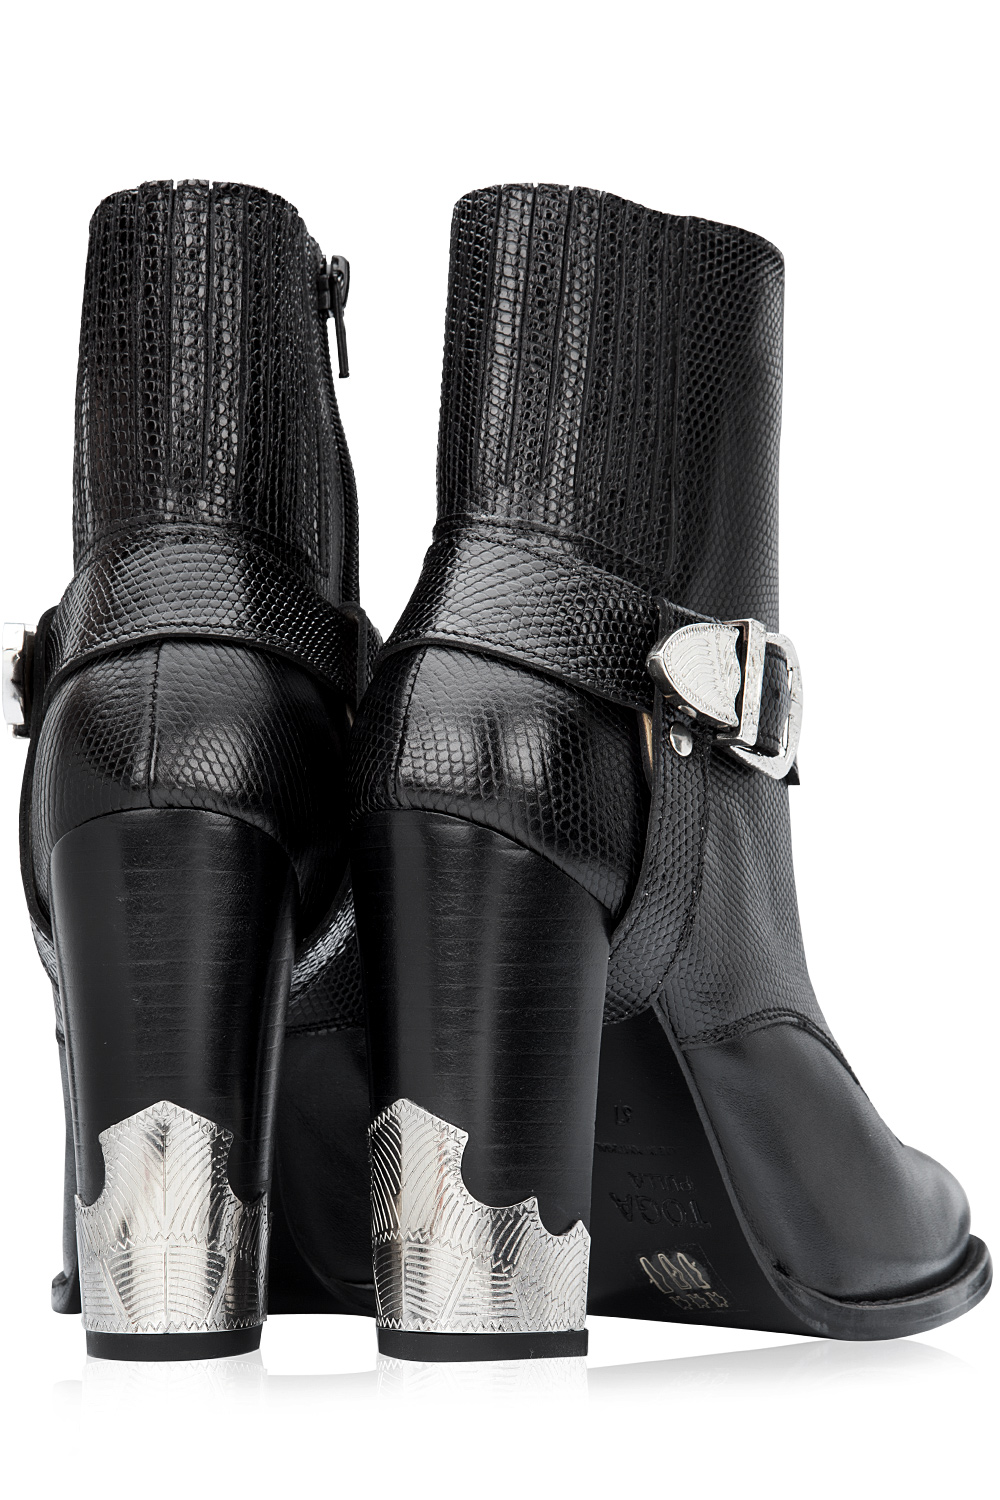 Best Sale Sale Online TOGA PULLA Heeled Cut-Out Boots New Arrival Fashion Sale Shopping Online With Mastercard Cheap Online Free Shipping Enjoy vCiM8OG6